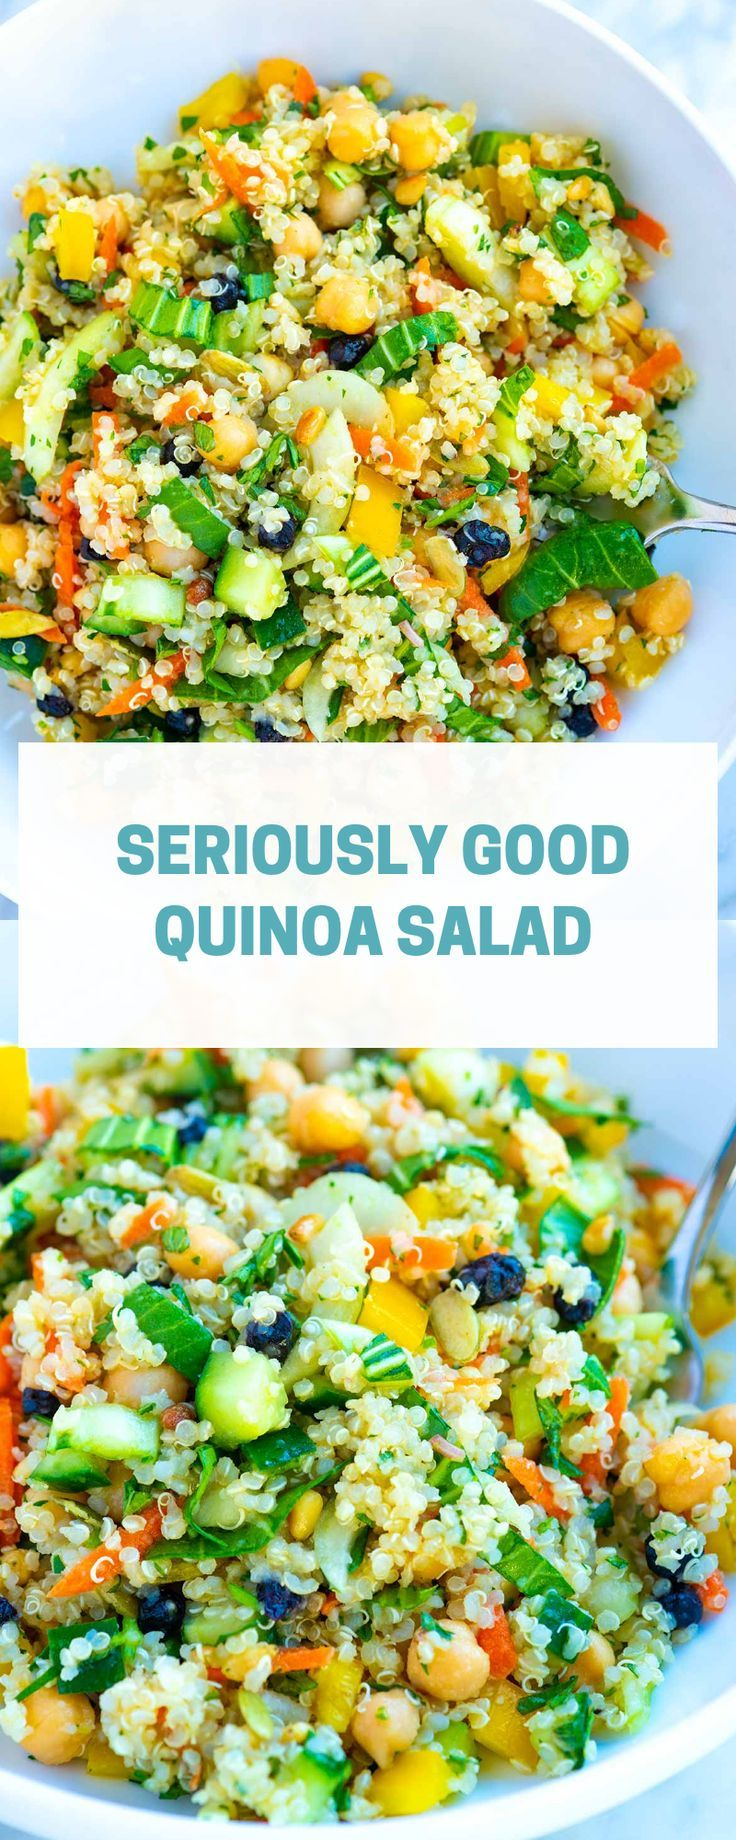 Photo of Seriously Good Quinoa Salad